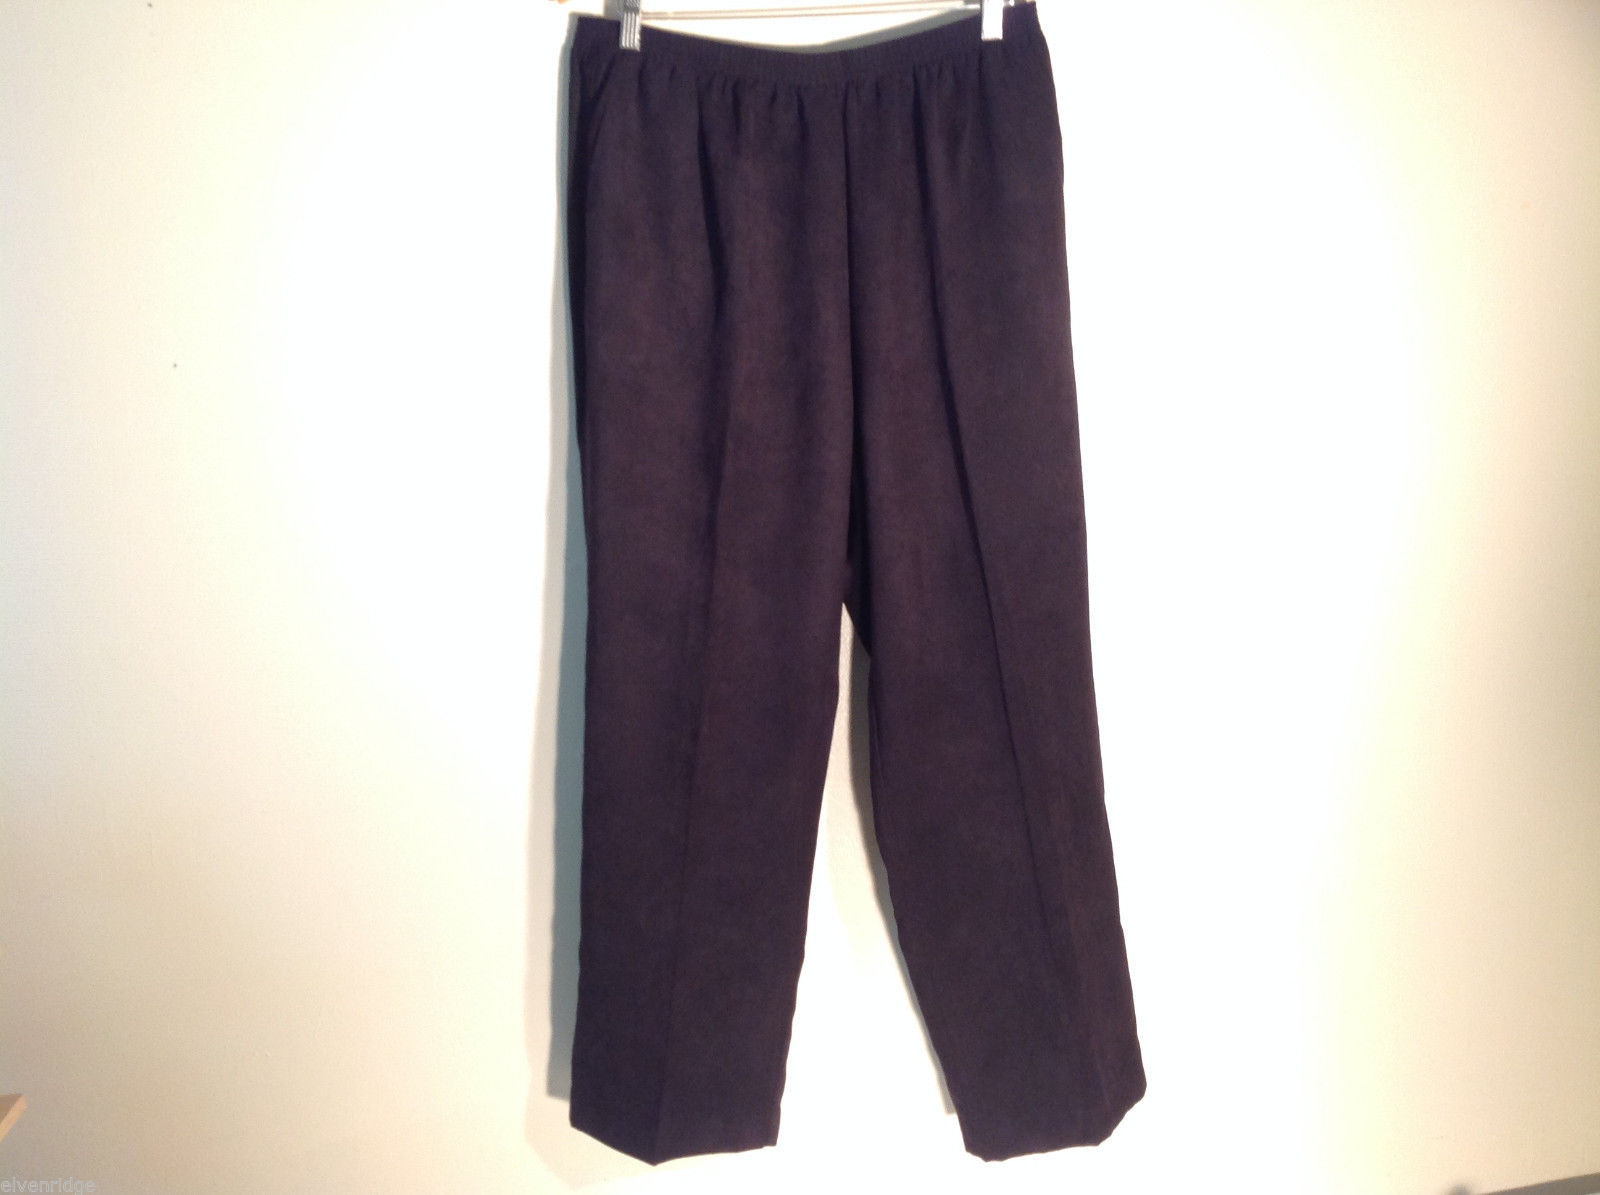 Womens Alfred Dunner Size 18W Black Slacks Stretchy Waist Excellent